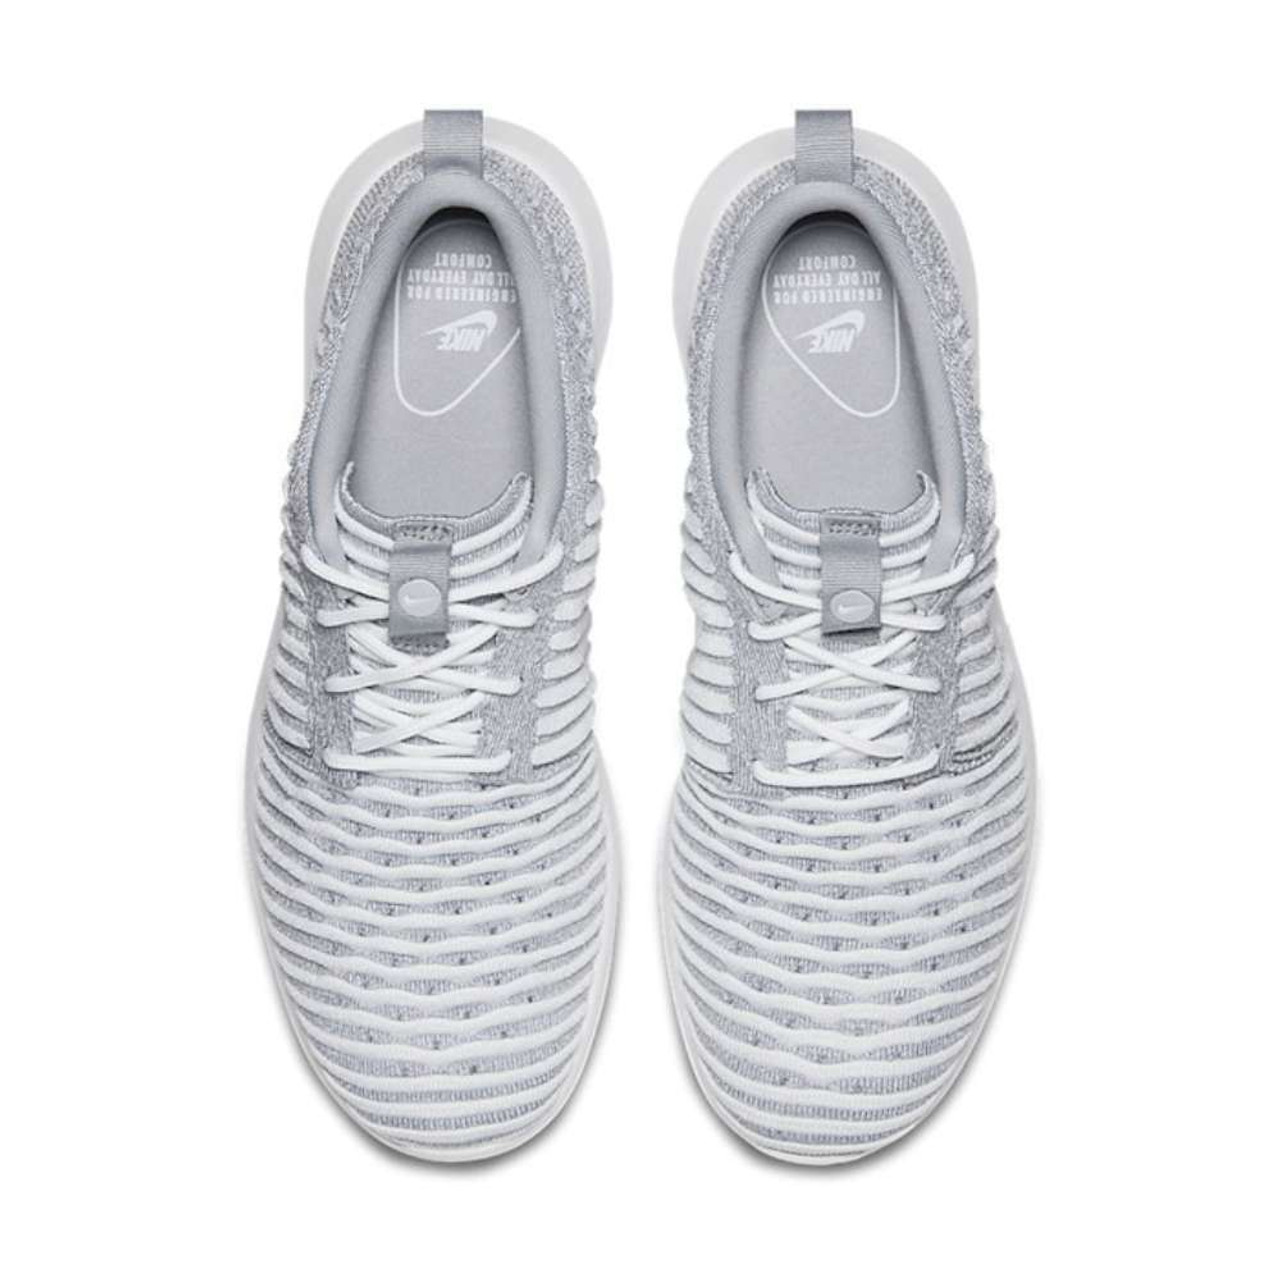 buy online e8ccf 65cb4 ... Nike Womens Roshe Two Flyknit Low Top Lace Up Running Sneaker~pp-650e418a  ...